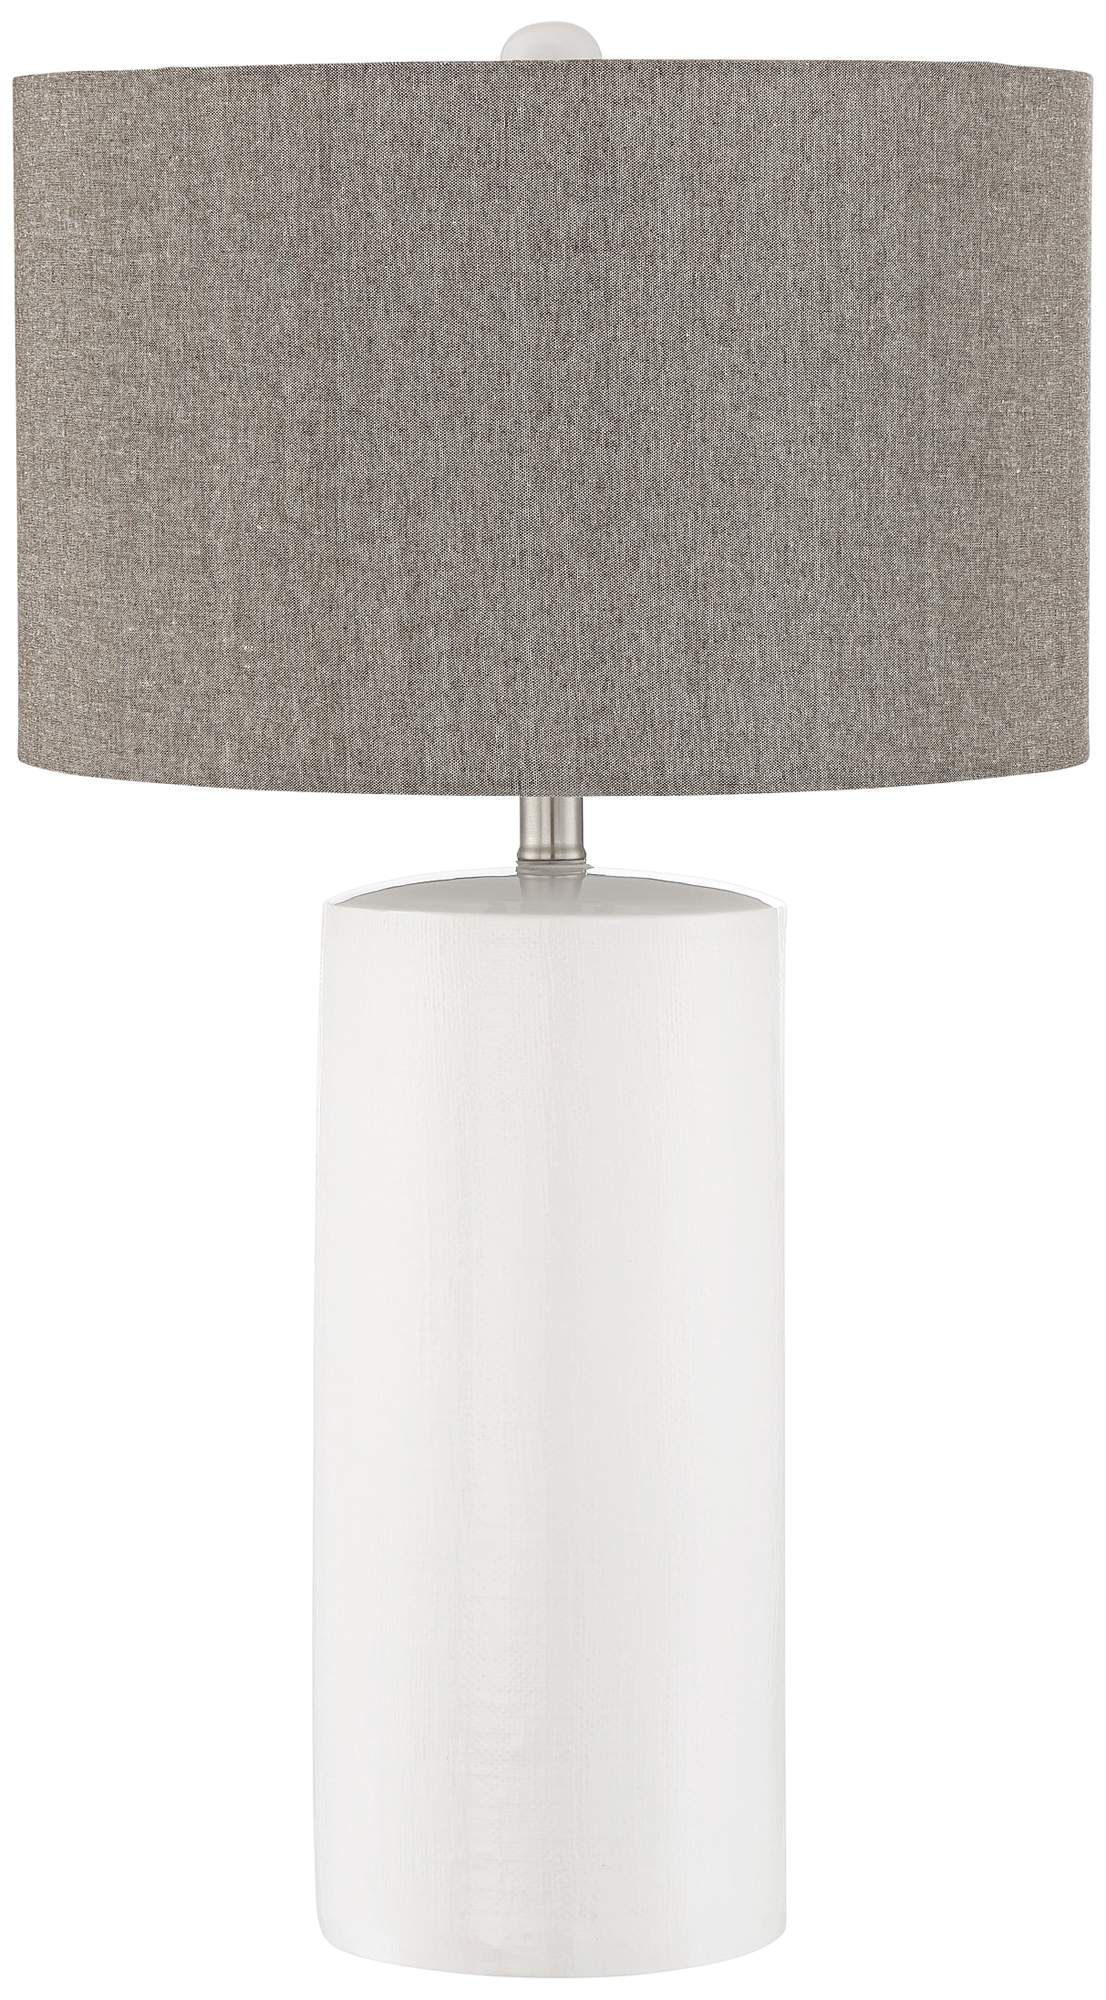 Table Lamps Lite Source Jacoby White Ceramic Table Lamp In 2020 Table Lamp White Table Lamp Ceramic Table Lamps